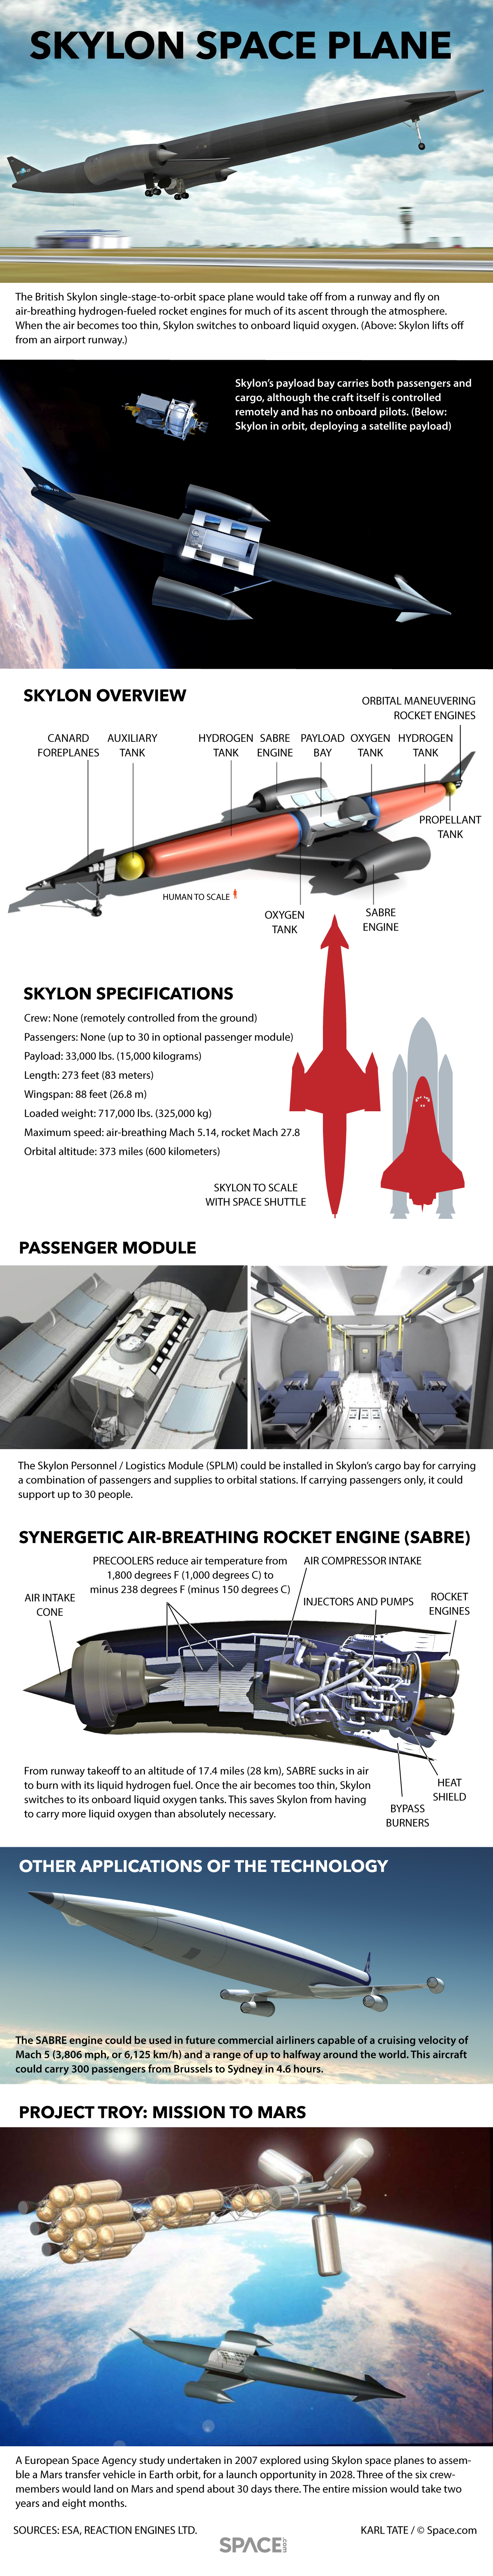 How the British Skylon Space Plane Works (Infographic)